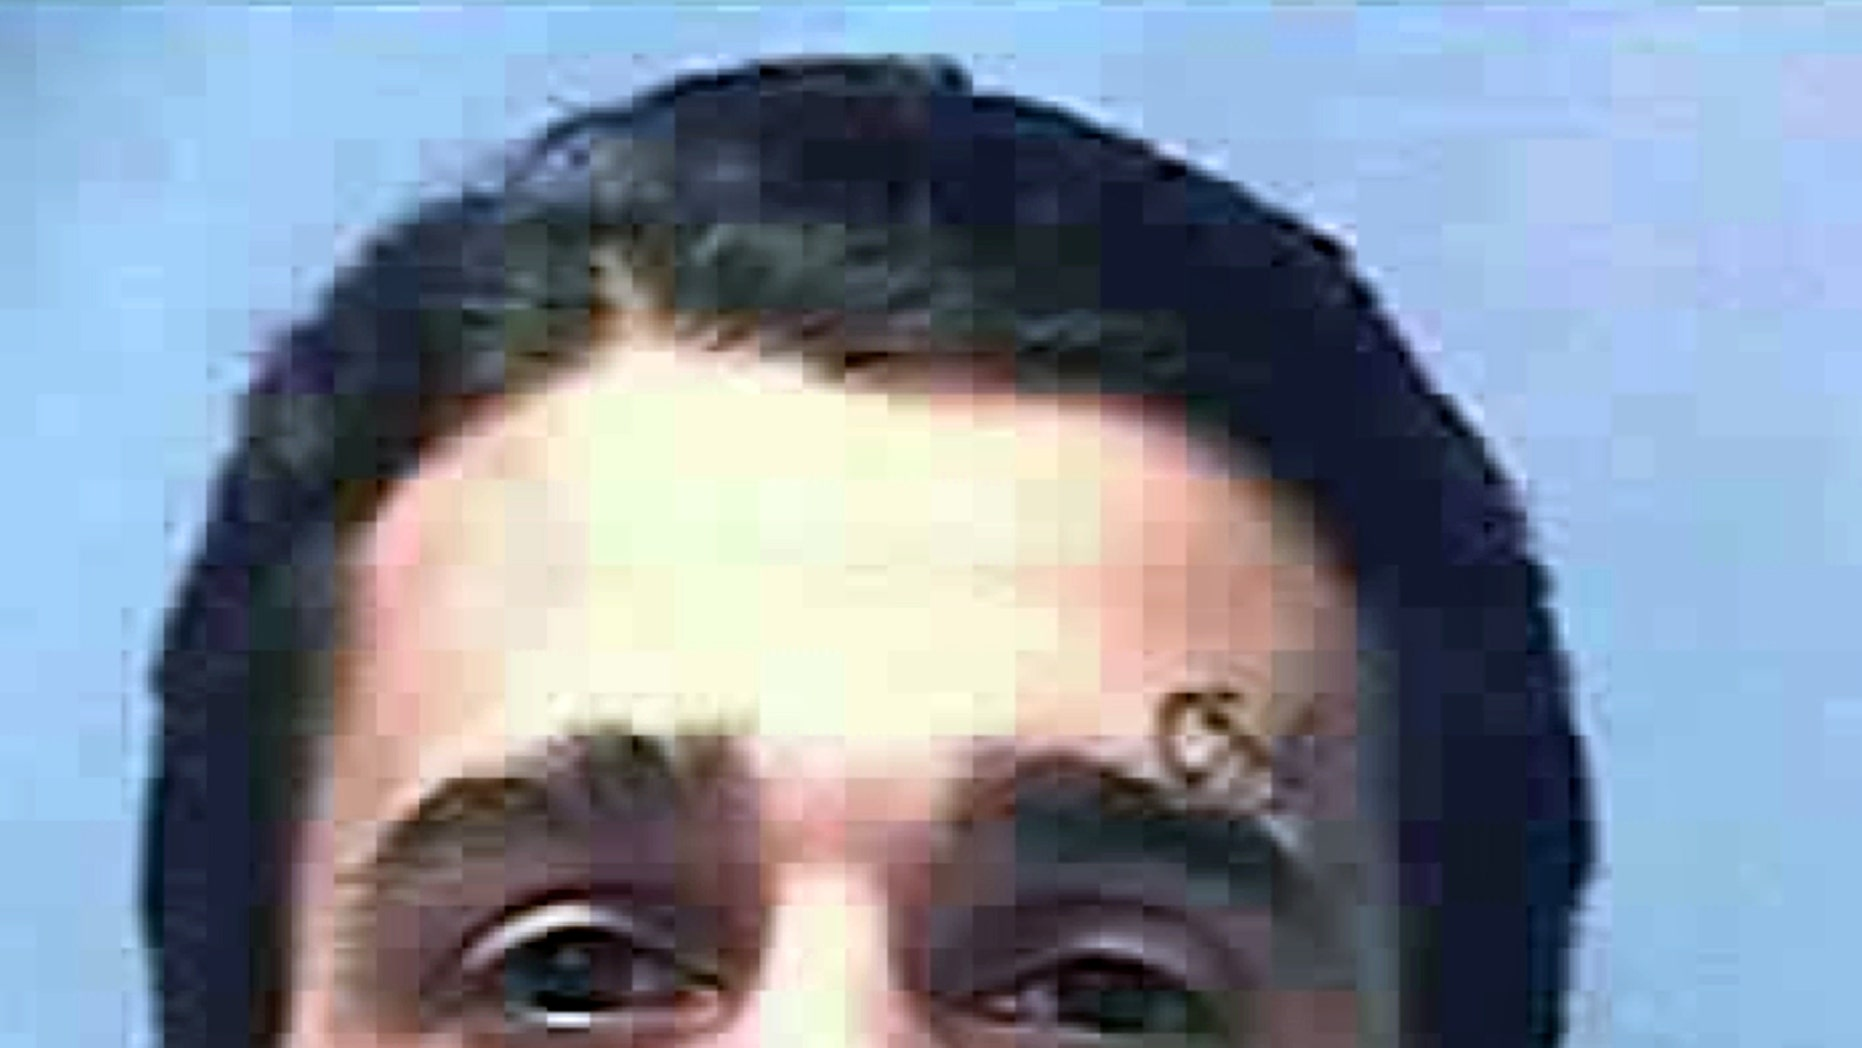 This undated photo provided by the Nevada Department of Corrections shows Carlos Manuel Perez Jr., 28. The Calrk County Coroner in Las Vegas said Wednesday, March 25, 2015, that Perezs death on Nov. 12, 2014, of multiple gunshots to the head, neck, chest and arms at High Desert State Prison was a homicide. Murphy says a homicide ruling means Perez died at the hands of another person. It doesnt establish fault.  (AP Photo/Nevada Department of Corrections)